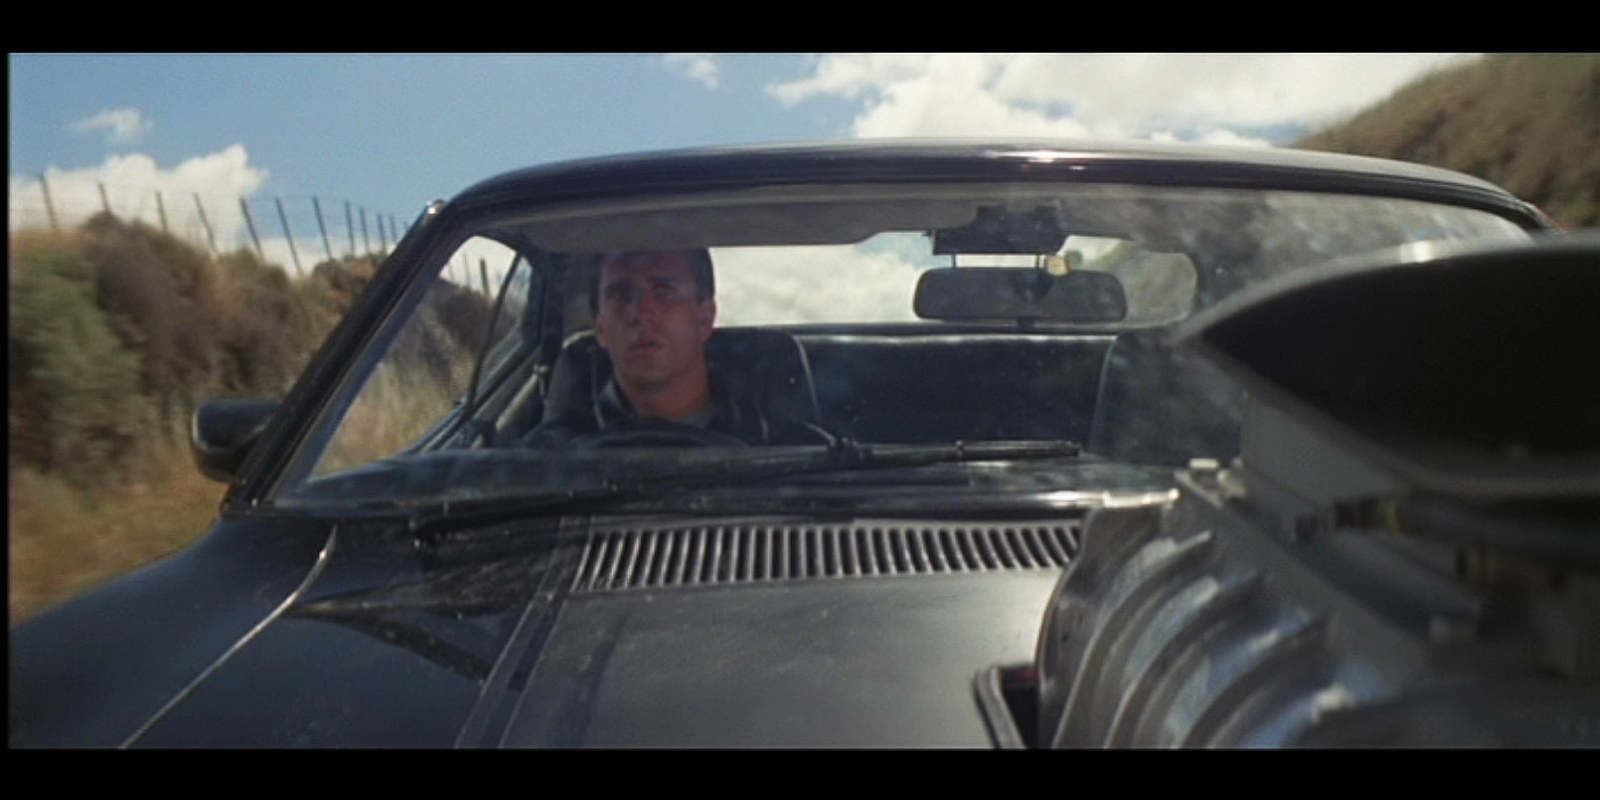 Mad Max Computer Wallpapers Desktop Backgrounds 1600x800 ID 1600x800